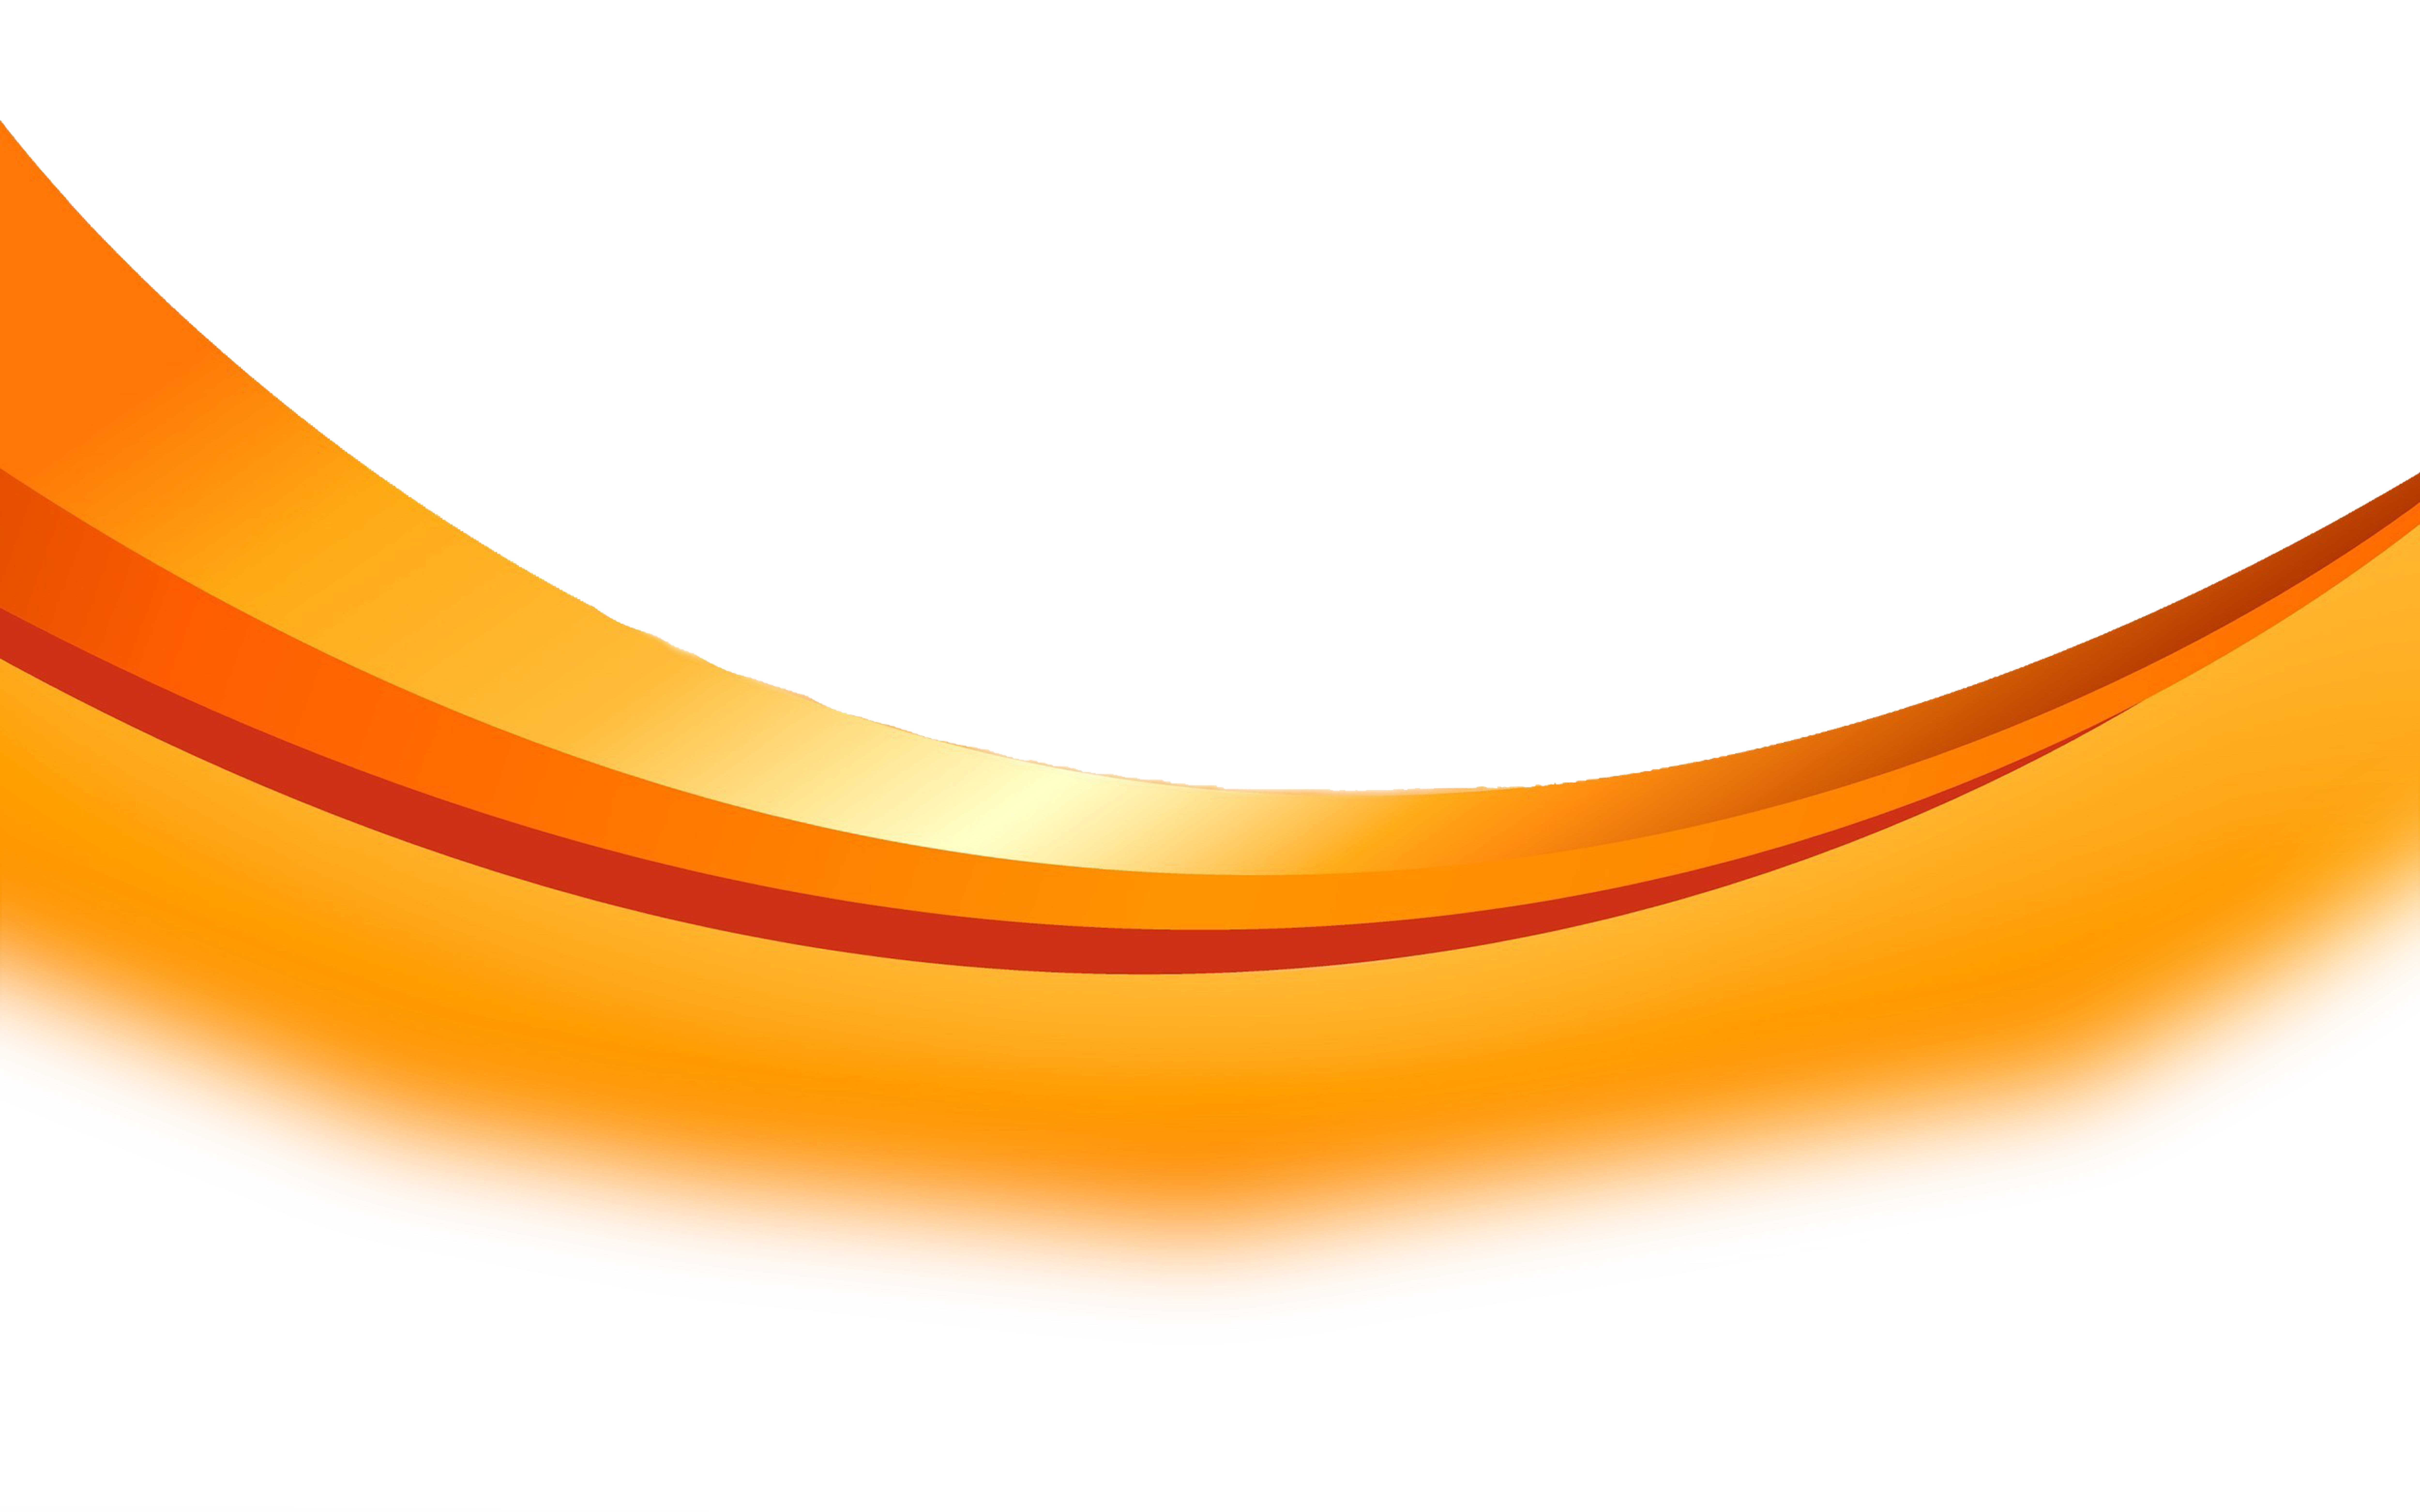 Orange background png. Clipart images gallery for